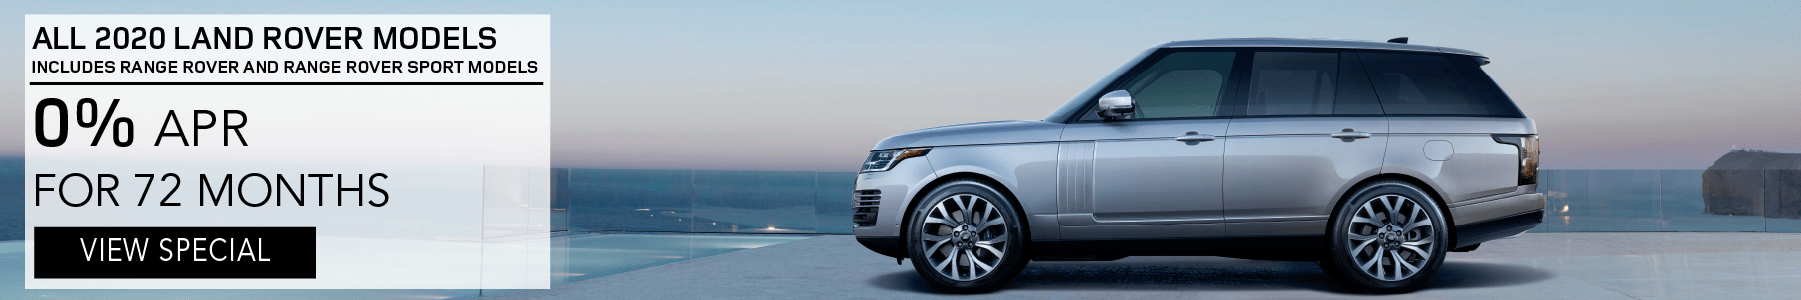 ALL 2020 LAND ROVER MODELS INCLUDES RANGE ROVER AND RANGE ROVER SPORT MODELS. 0% APR FOR 72 MONTHS. VIEW SPECIAL. SILVER RANGE ROVER PARKED ON BALCONY OVERLOOKING OCEAN.